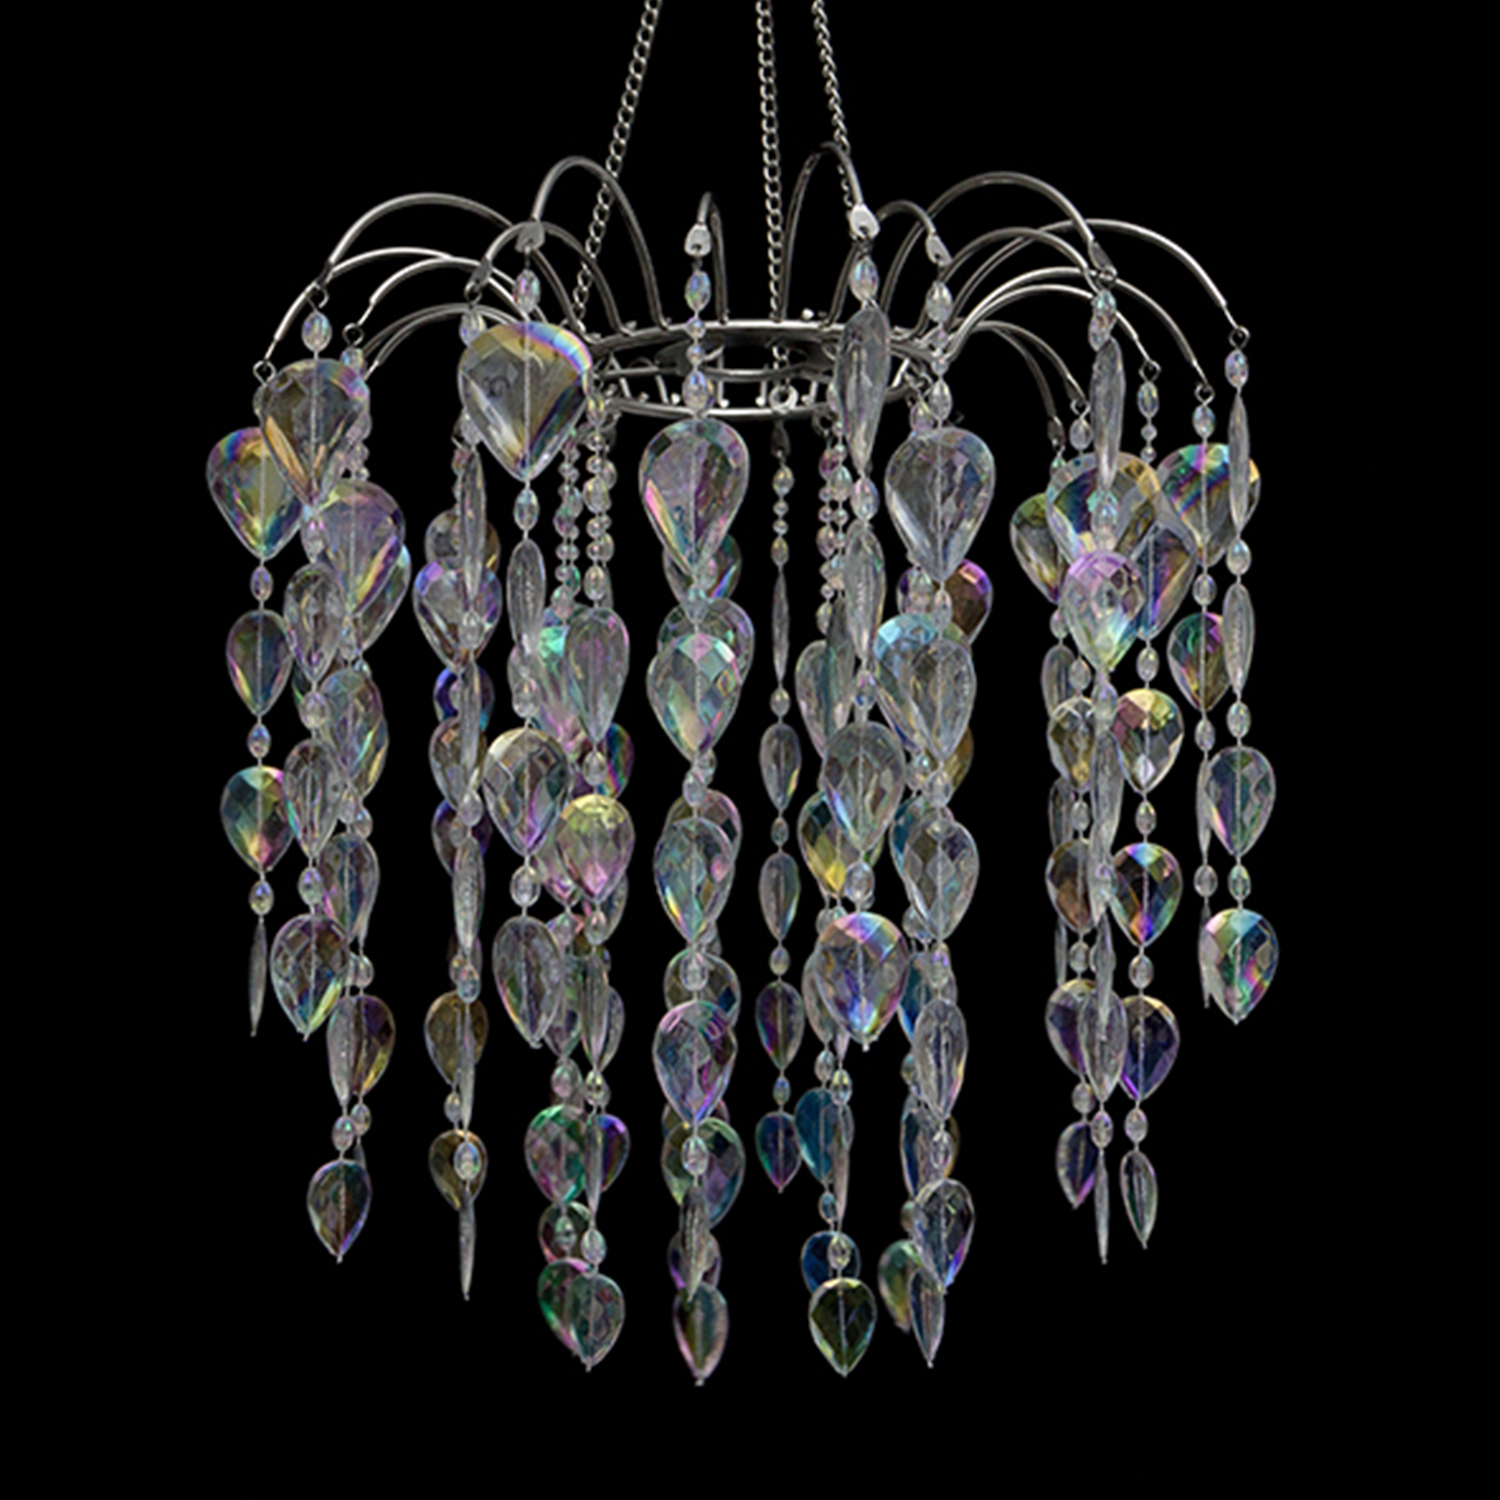 Crystal teardrop chandelier tap to expand aloadofball Images